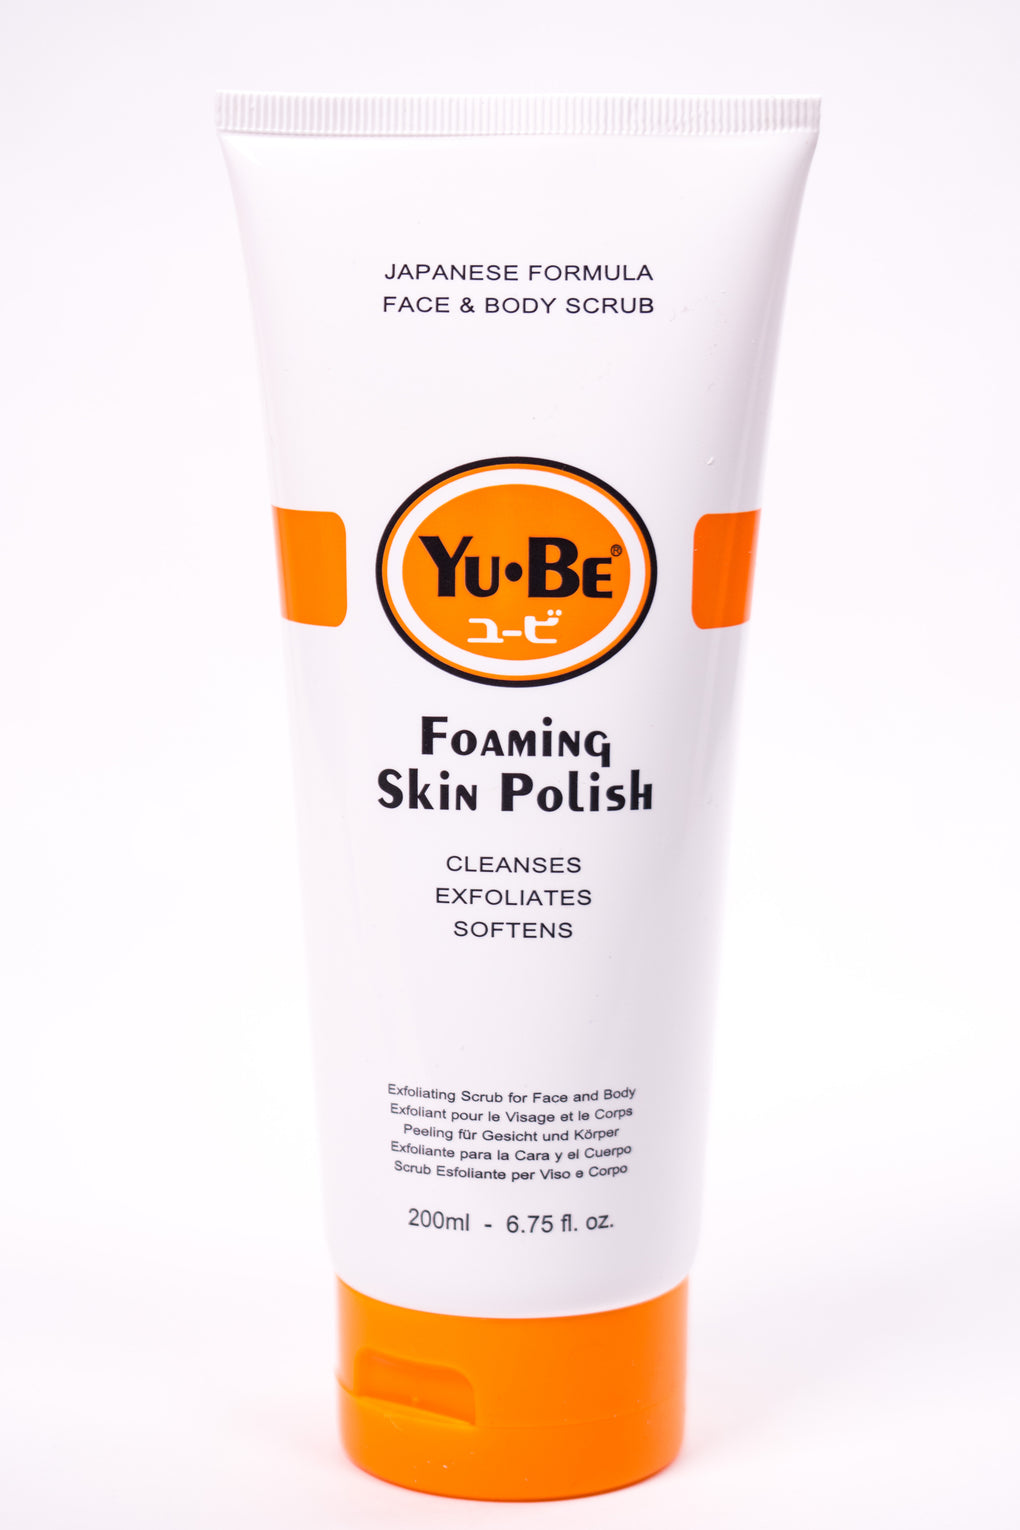 Yu-Be Foaming Skin Polish at Consigliere